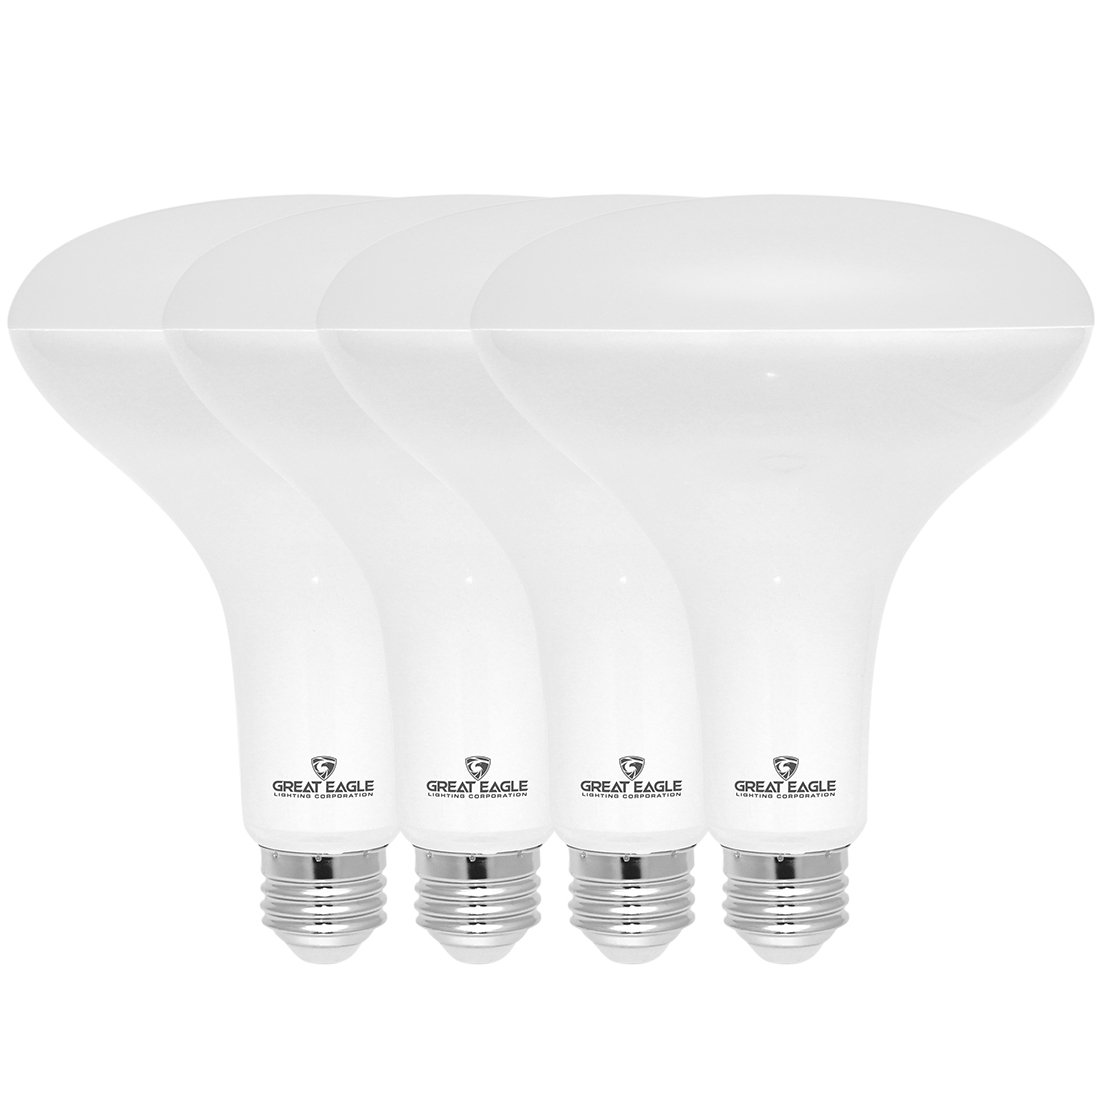 Great Eagle LED BR40 3000K Dimmable Light Bulb, 15W(120W Equivalent) UL Listed 1480 Lumens Bright White Color for Recessed and Track Lighting Fixtures (4-Pack) by Great Eagle Lighting Corporation